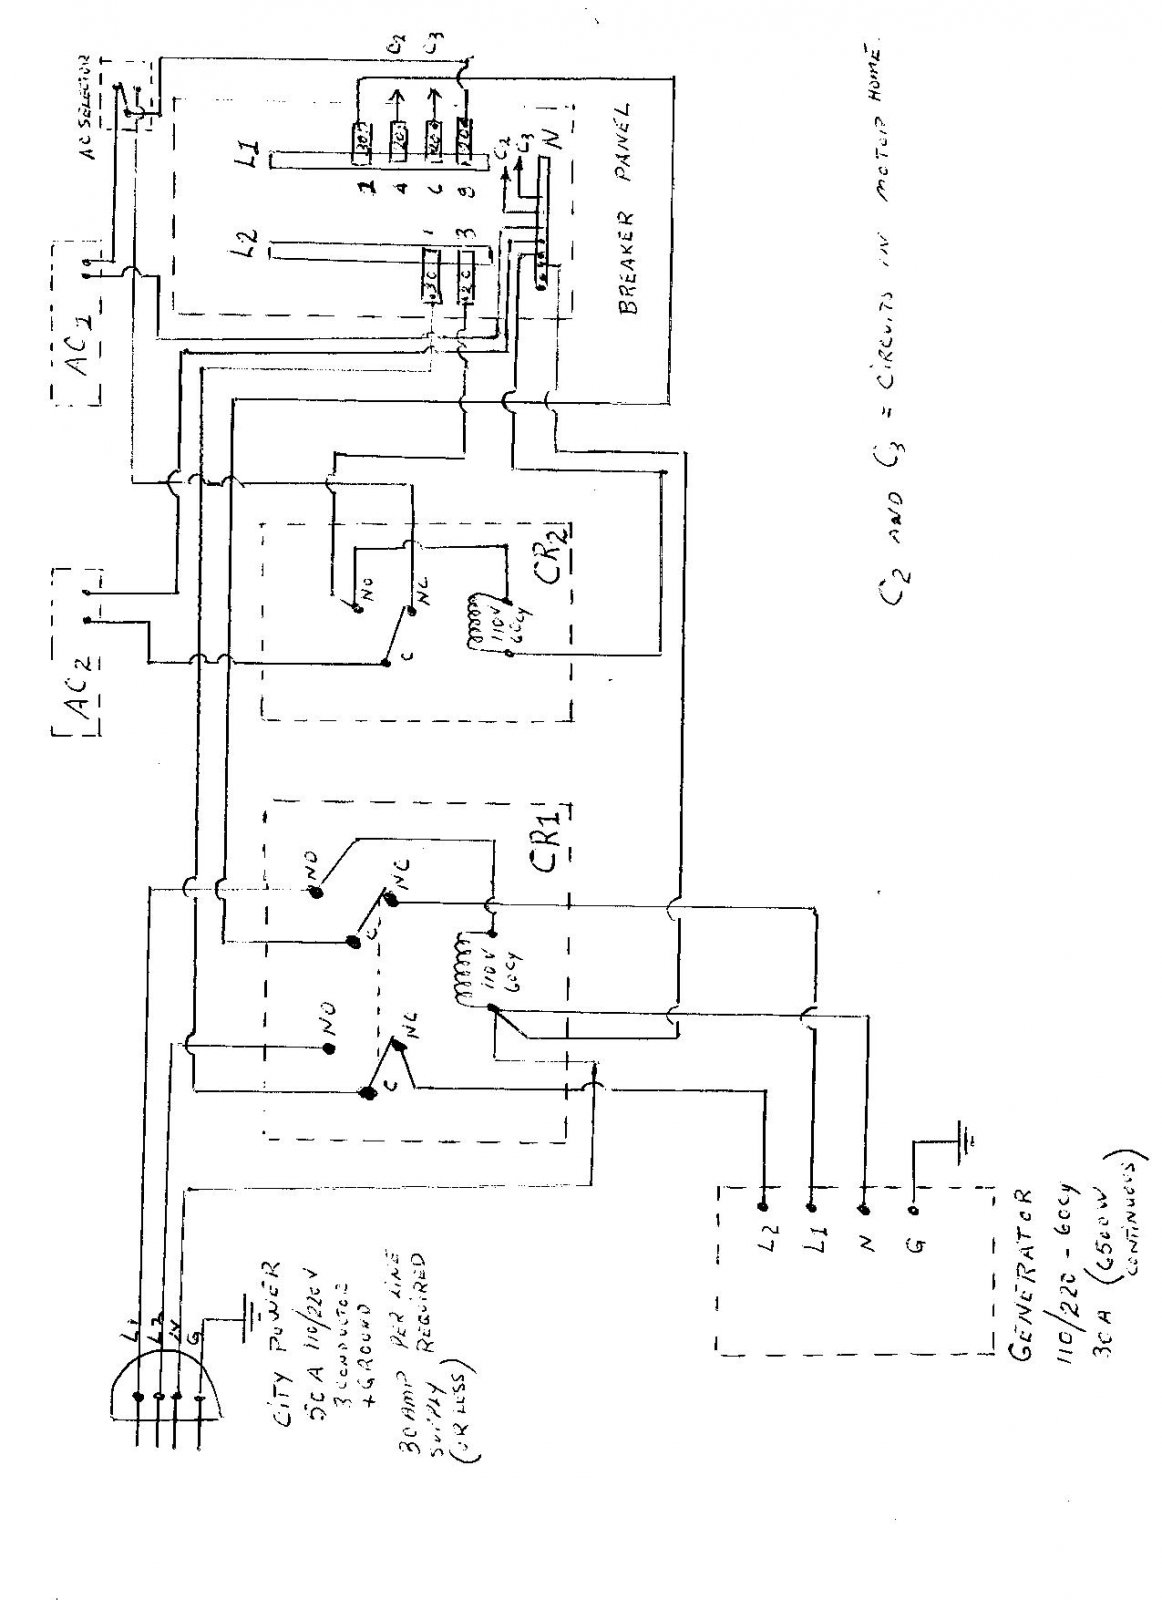 Click image for larger version  Name:City power circuit.jpg Views:63 Size:167.1 KB ID:190786